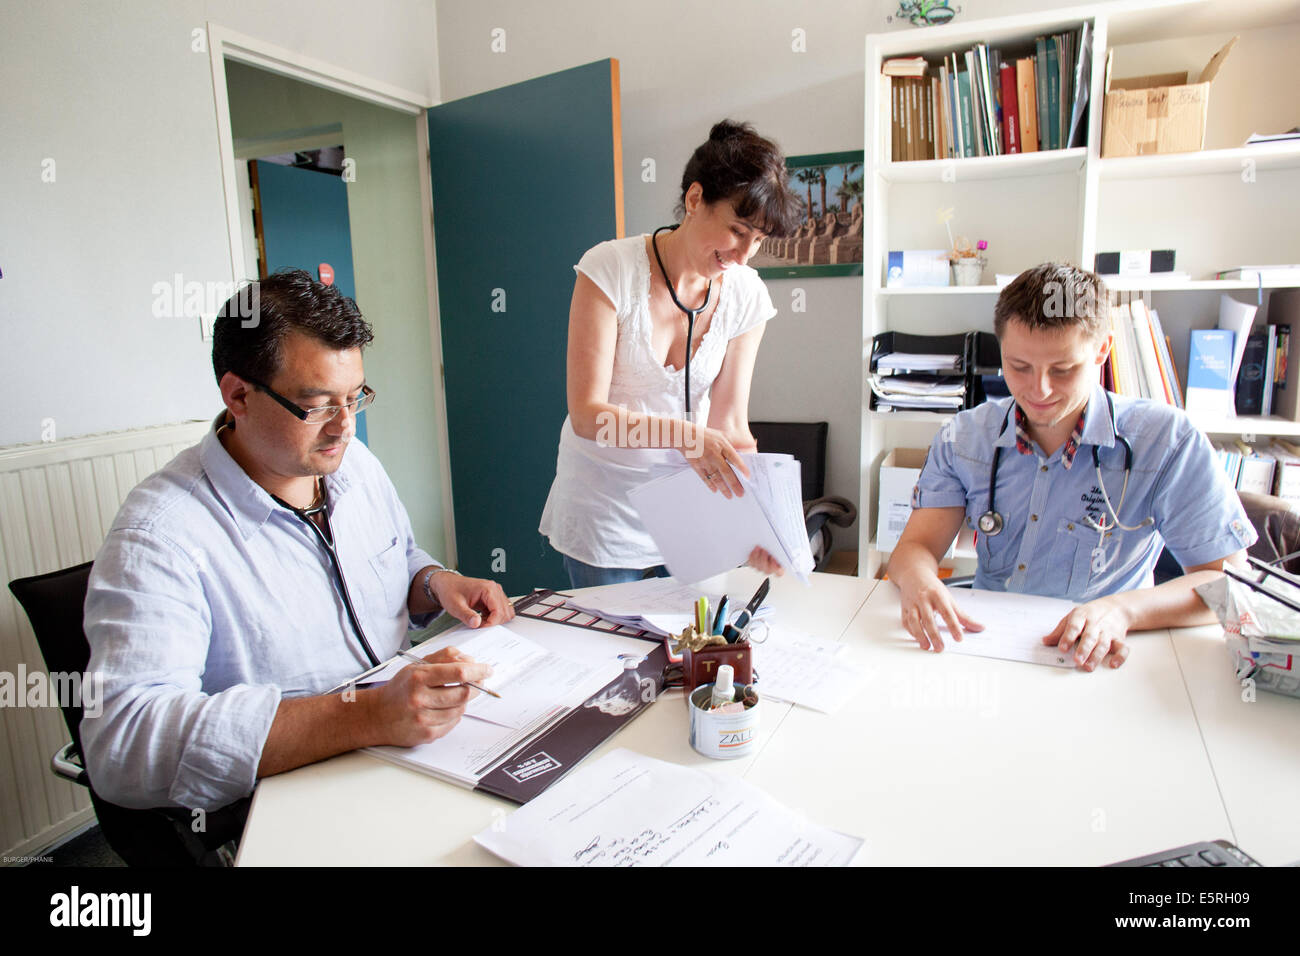 Meeting of associated general practitioners in a medical office, Dordogne, France. - Stock Image